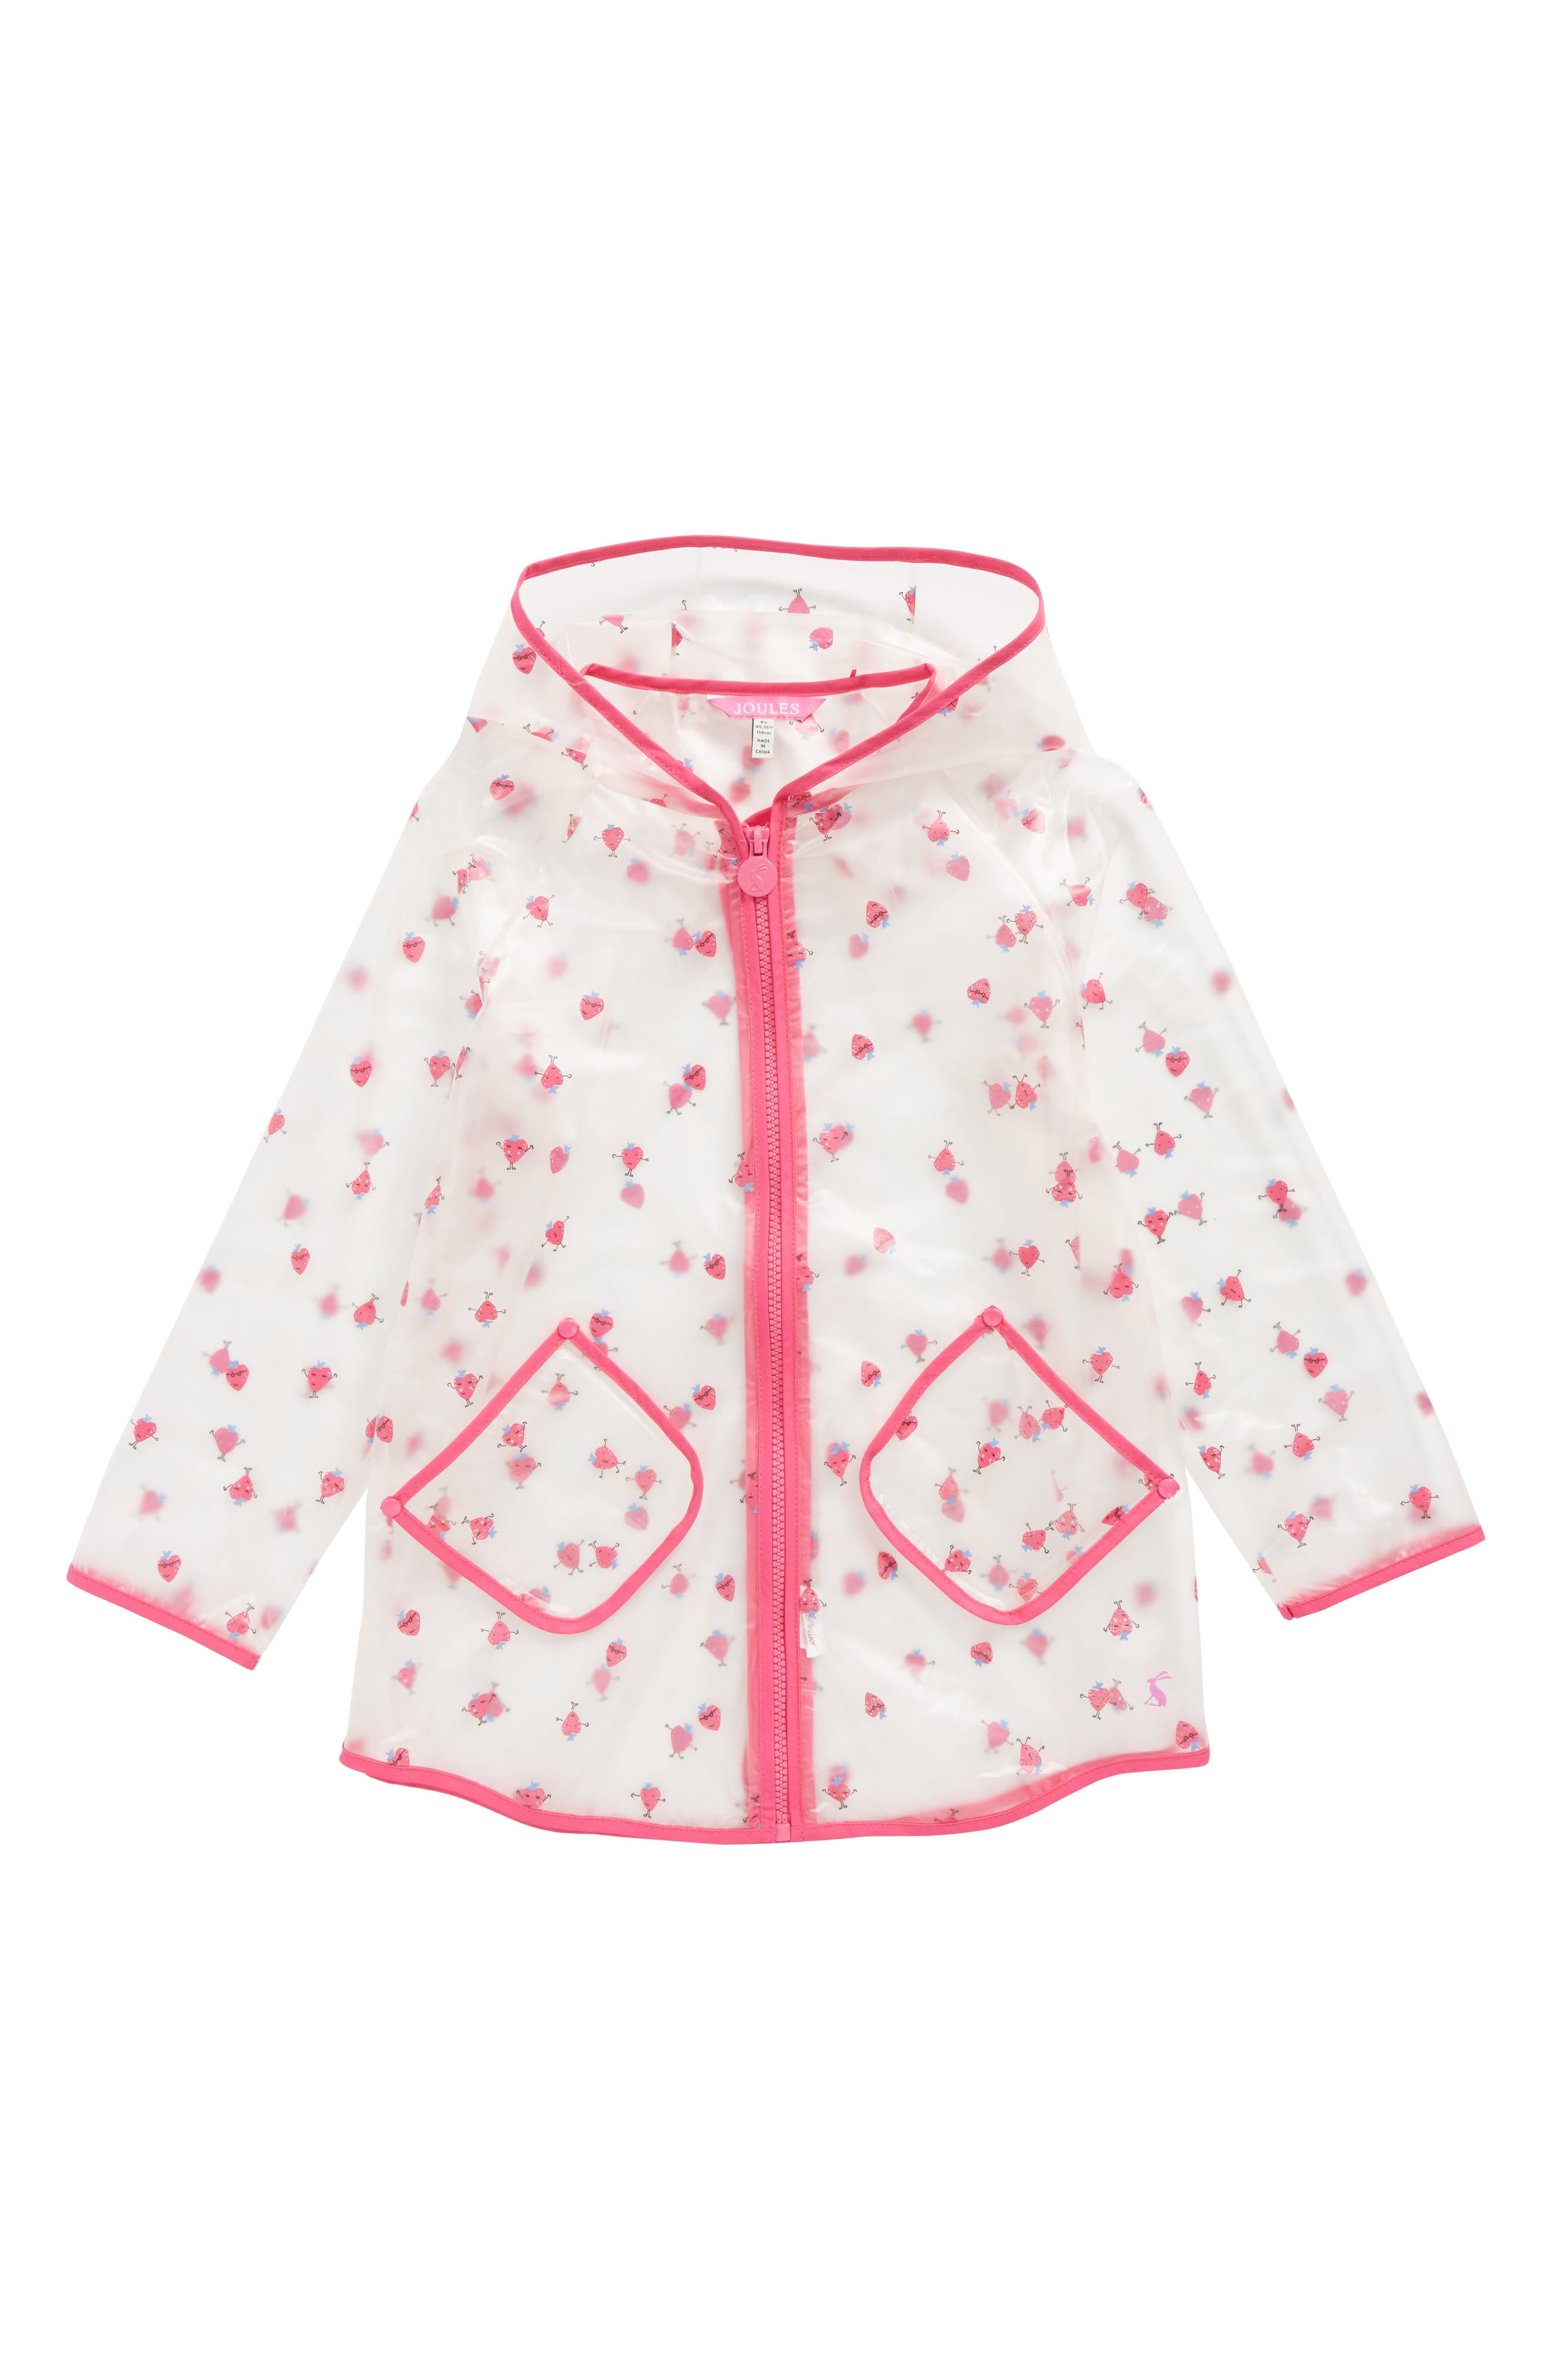 Print Sheer Rain Coat,                         Main,                         color, 107